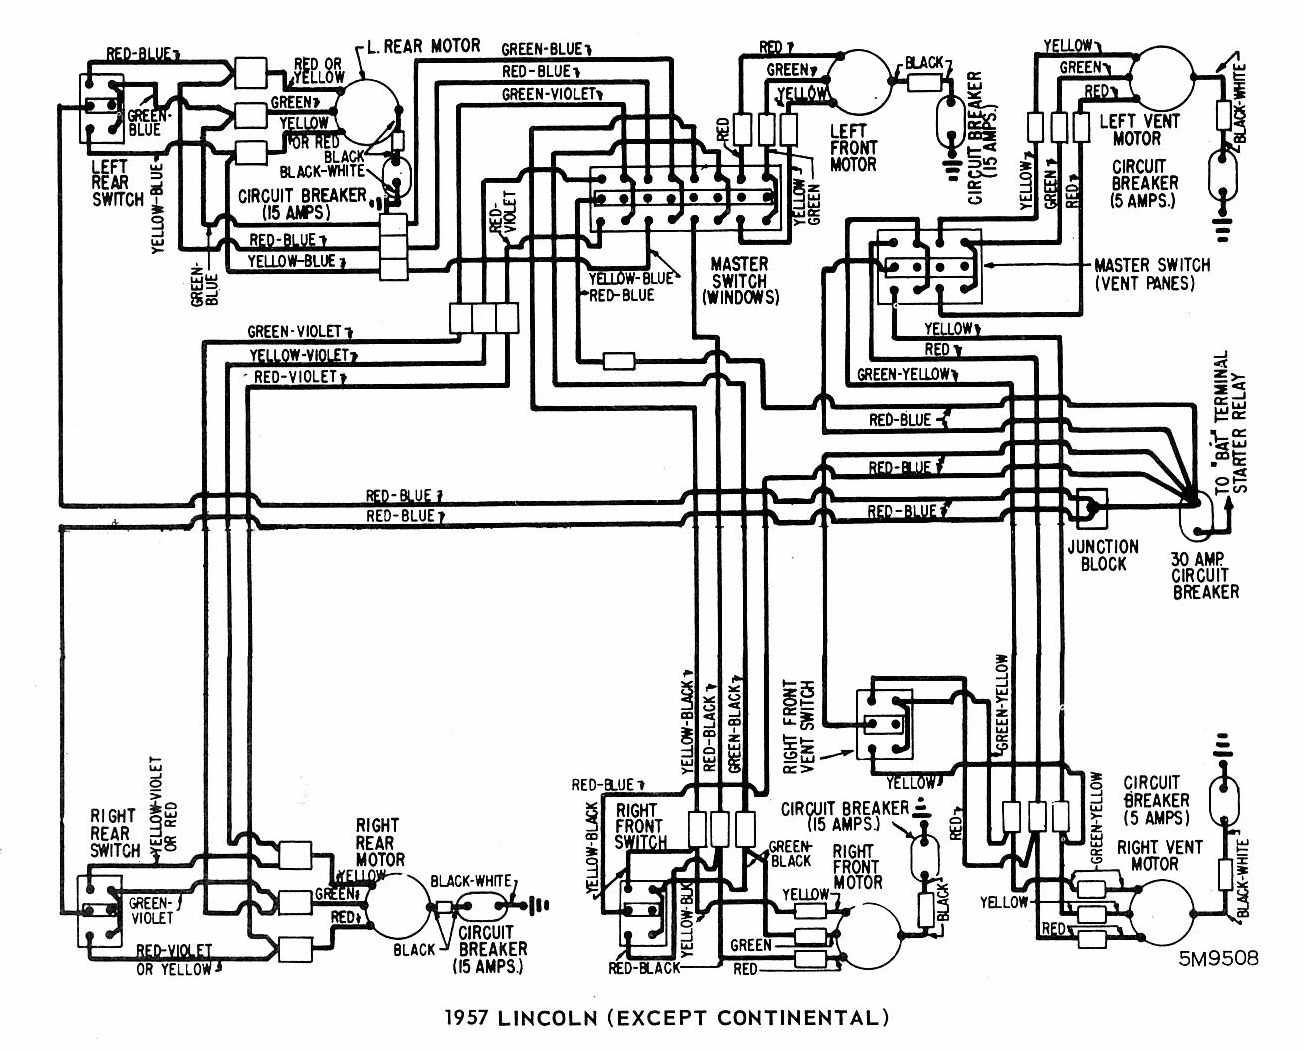 1988 lincoln town car fuse diagram  1988  free engine